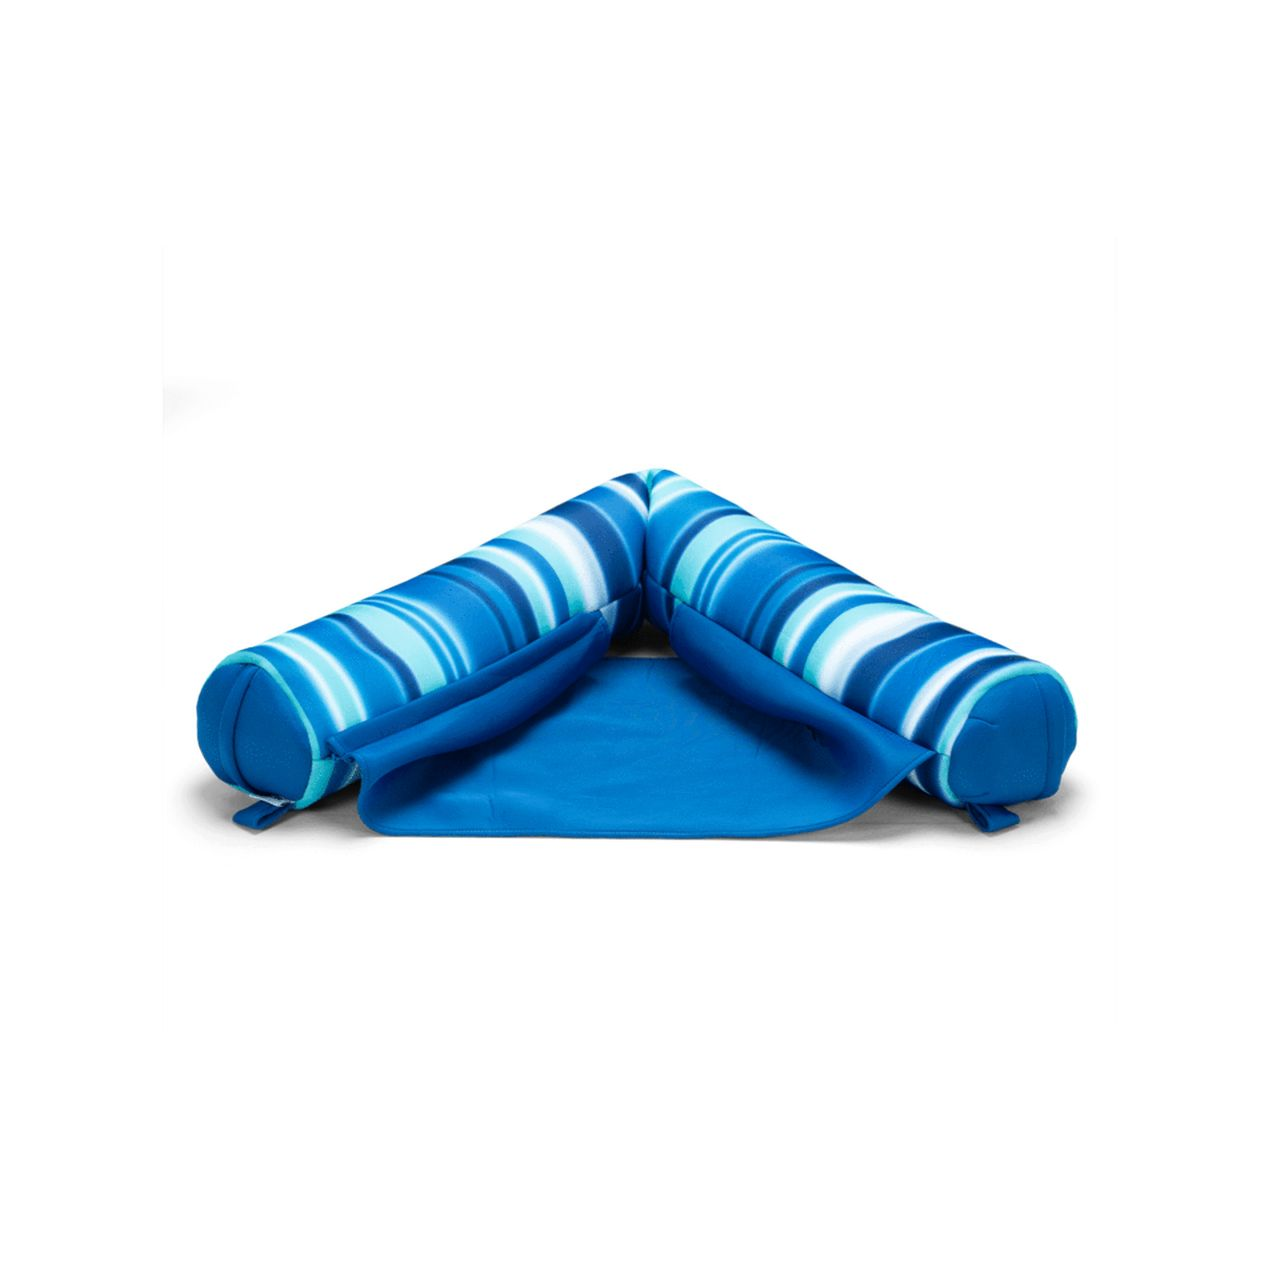 Big Joe Noodle Sling Pool Float - Blurred Blue